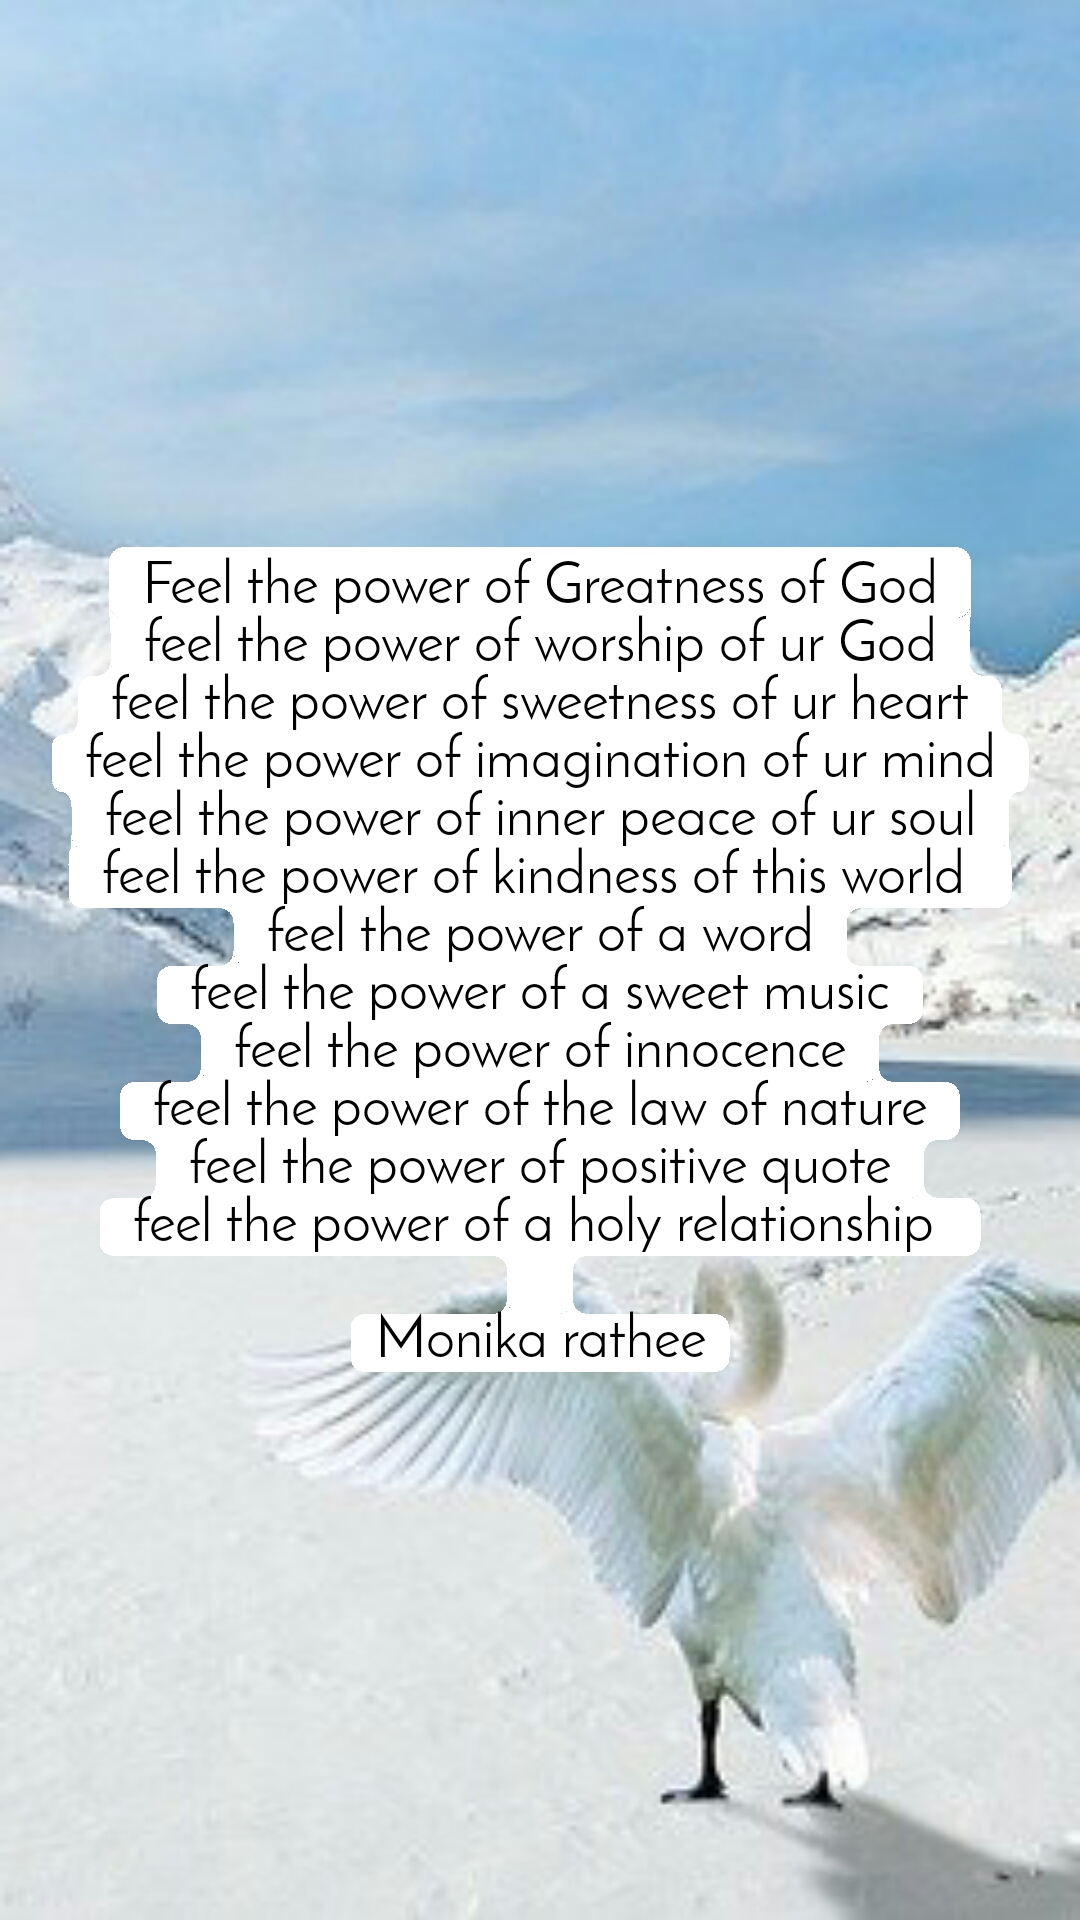 Feel the power of Greatness of God feel the power of worship of ur God feel the power of sweetness of ur heart feel the power of imagination of ur mind feel the power of inner peace of ur soul feel the power of kindness of this world  feel the power of a word feel the power of a sweet music feel the power of innocence feel the power of the law of nature feel the power of positive quote feel the power of a holy relationship   Monika rathee